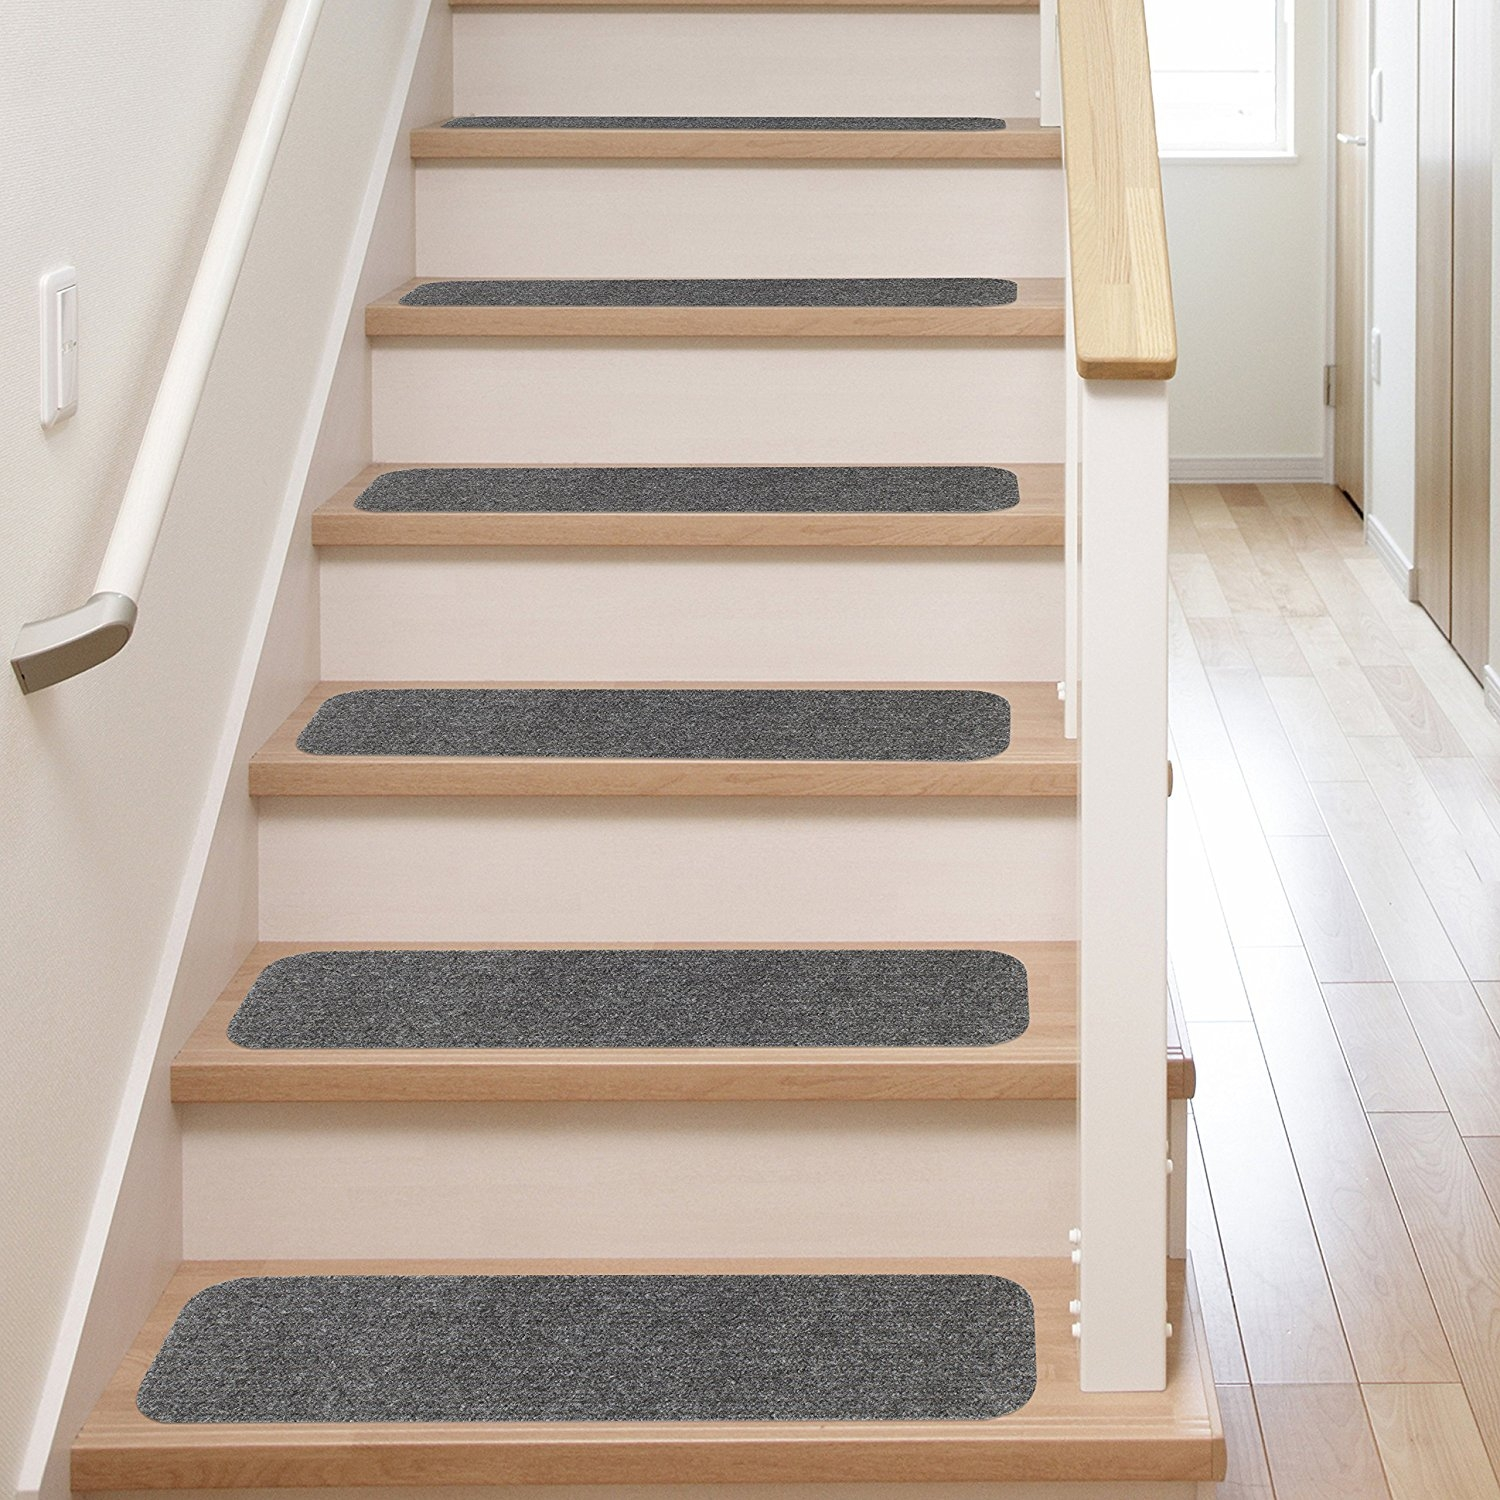 13 Stair Treads Non Slip Carpet Pads Easy Tape Installation Within Carpet Protector Mats For Stairs (Image 1 of 15)